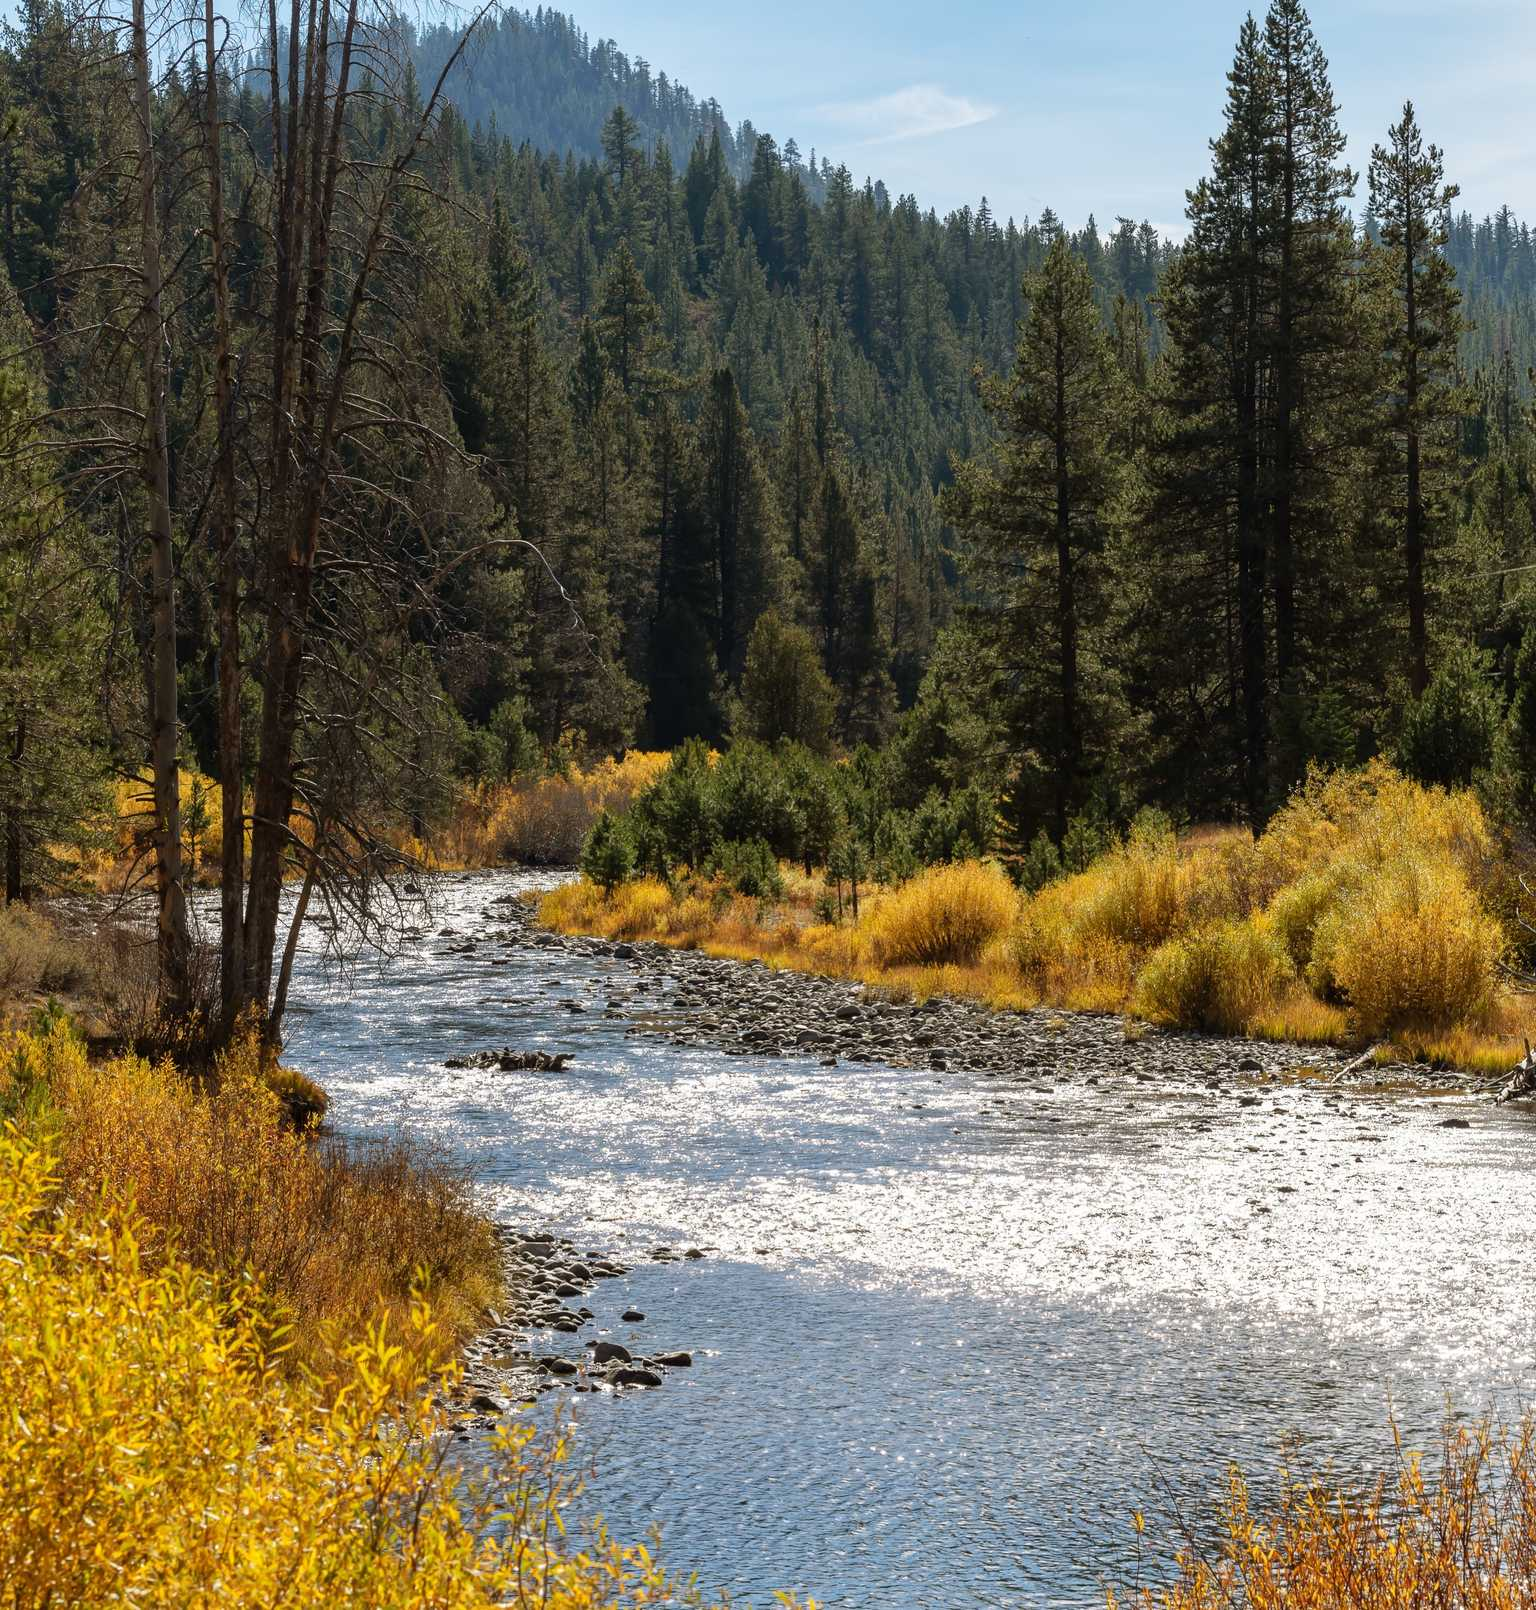 Since the first grant in 2006 more than $14 million in grants has flowed through the Truckee River Fund to protect and enhance the water quality and the water resources of the Truckee River.